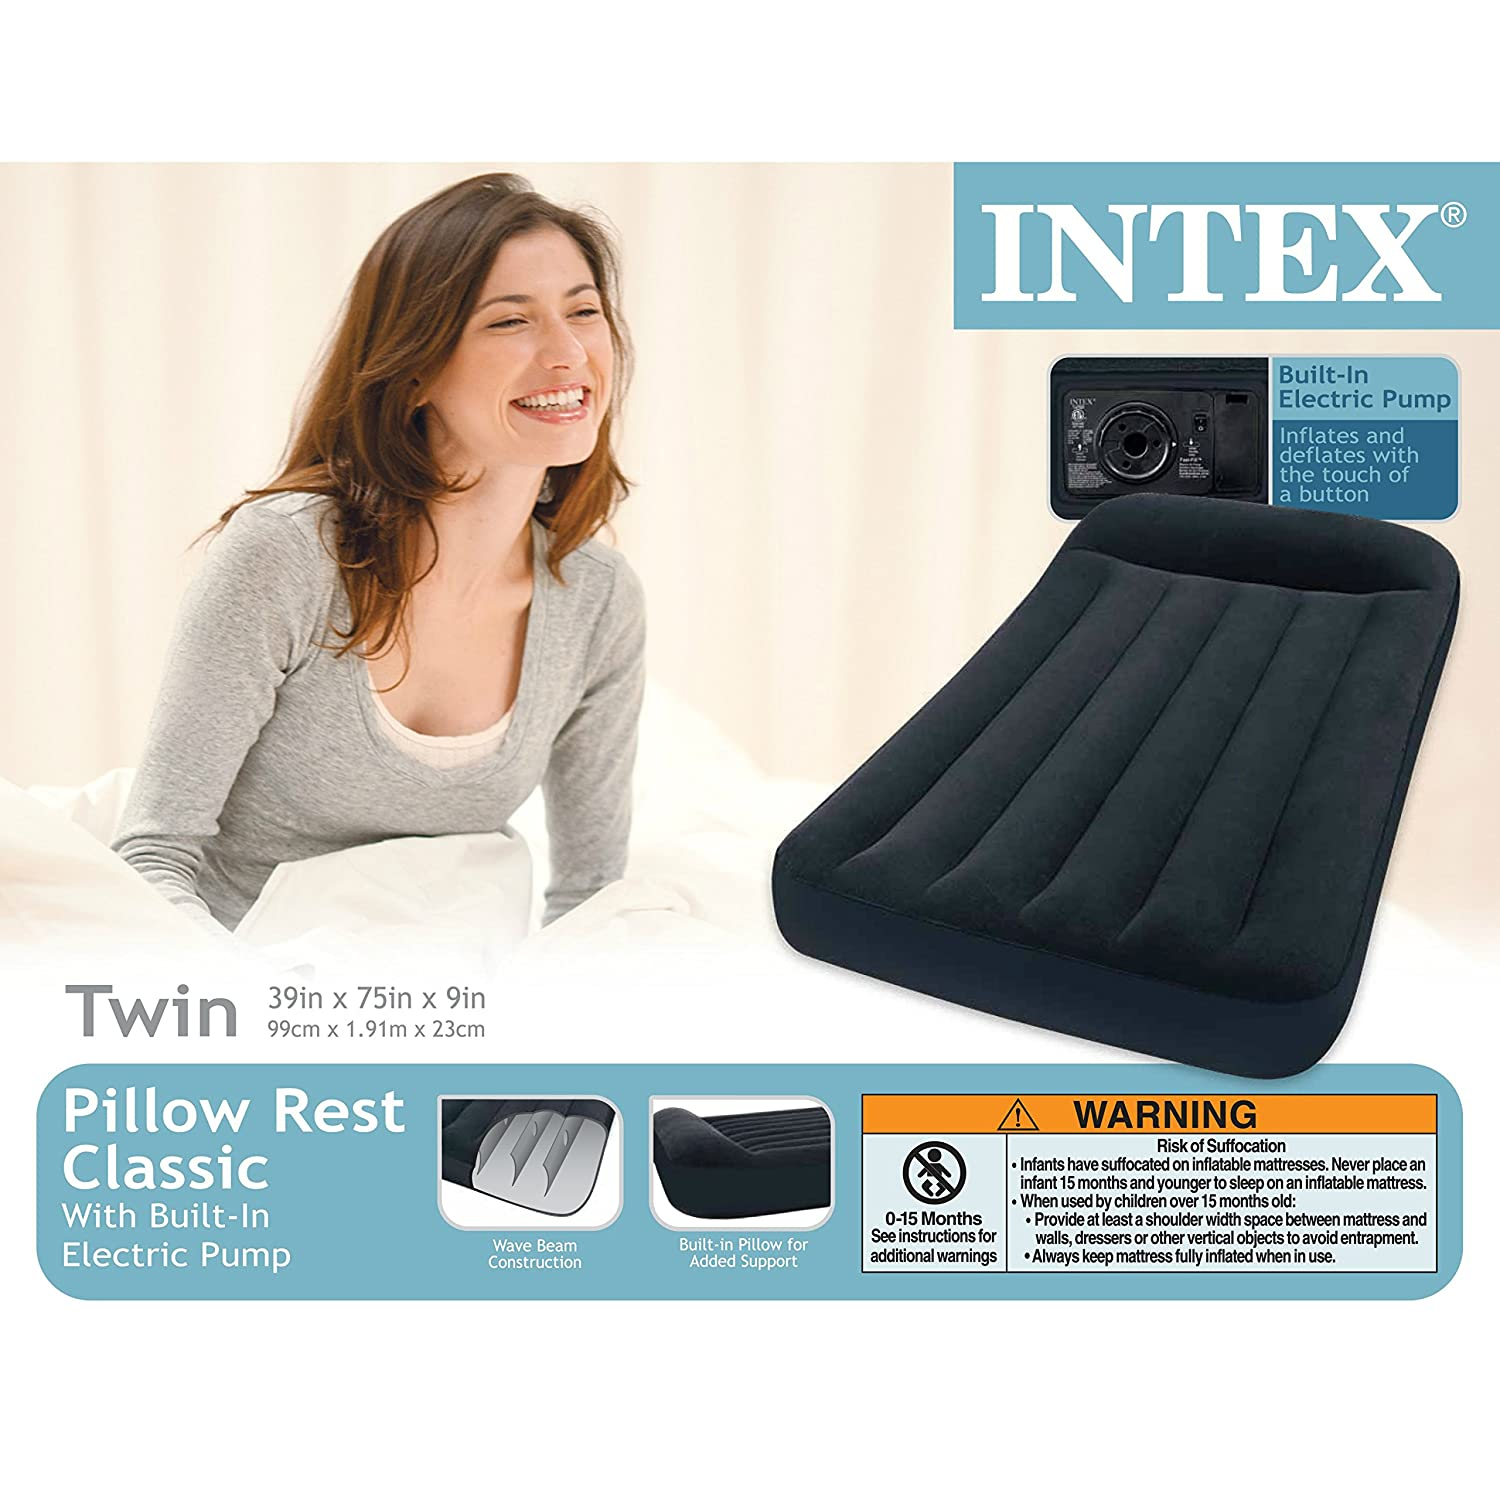 Intex Pillow Rest Classic Airbed with Built-in Pillow and Electric Pump Twin